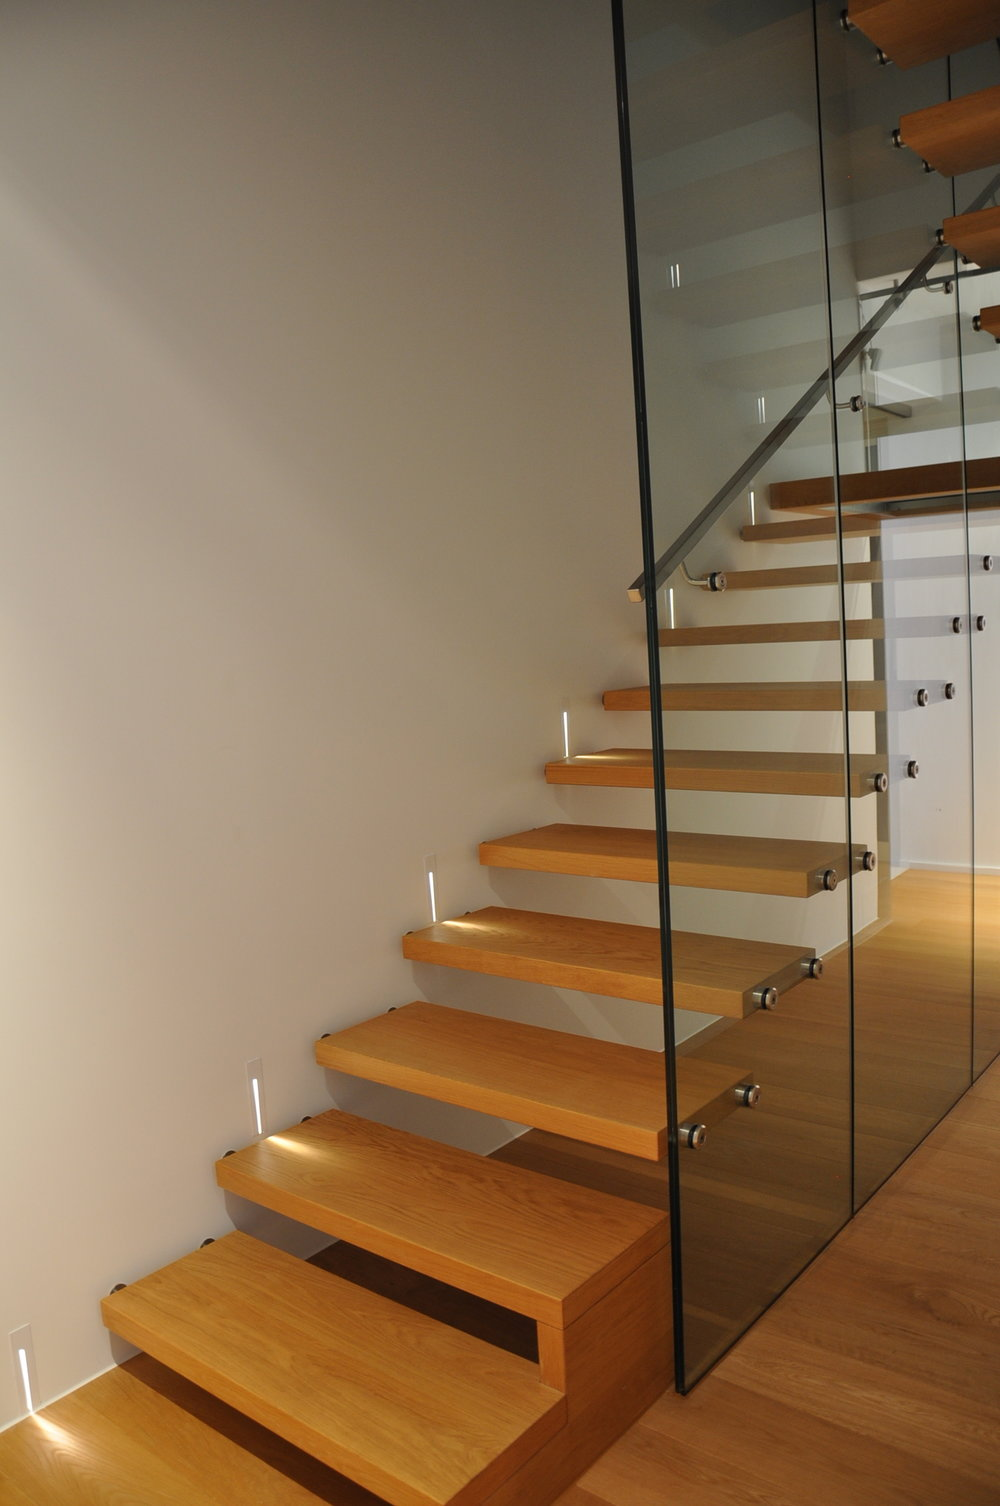 Our_House_Stairs (17).JPG